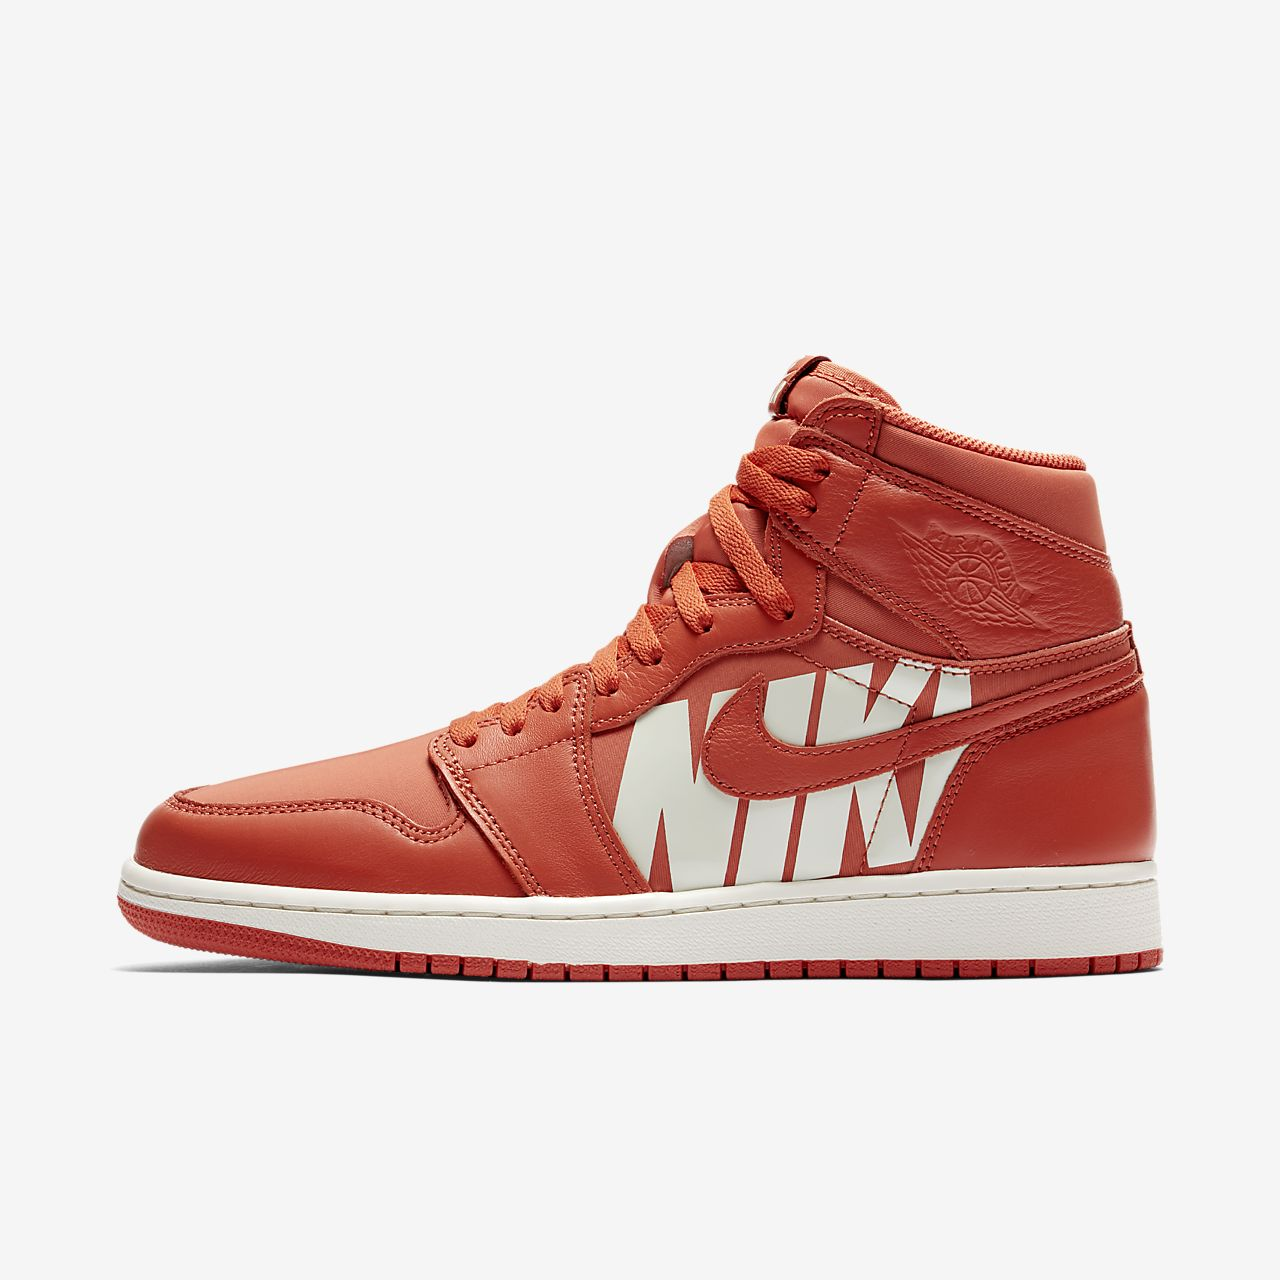 a35ae0e98b48 Air Jordan 1 Retro High OG Shoe. Nike.com ZA